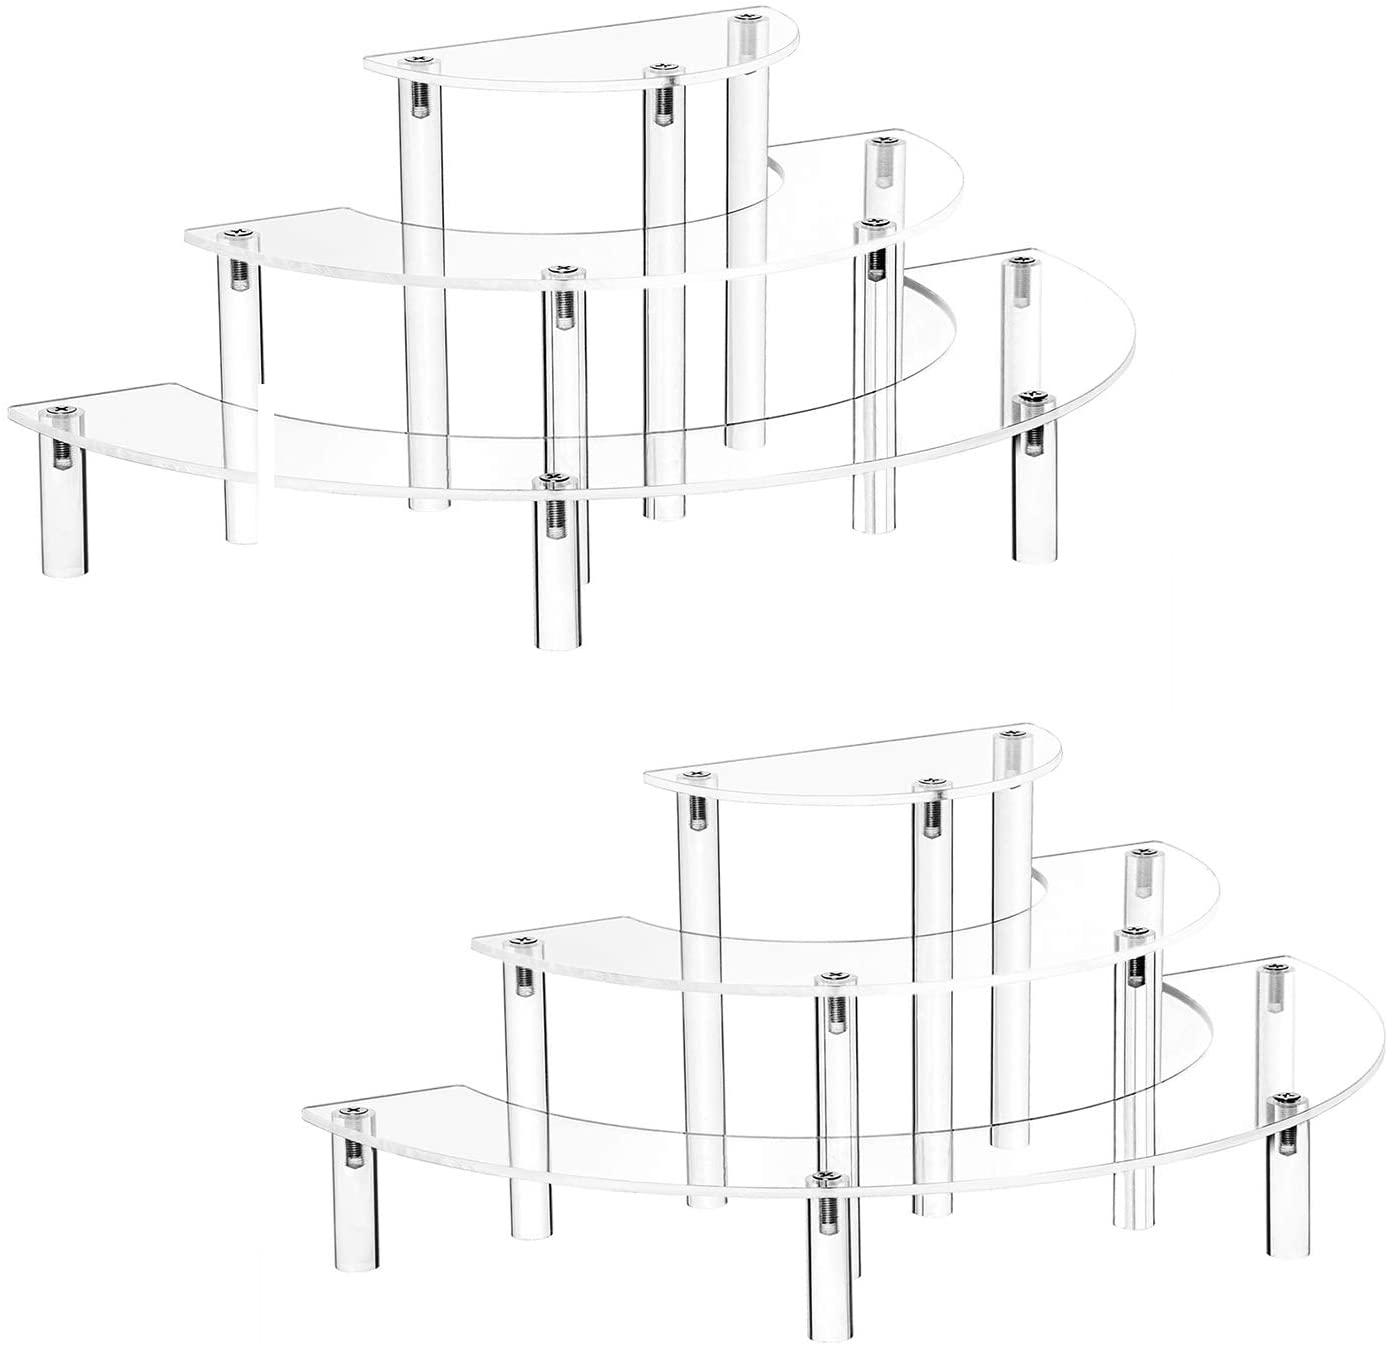 YestBuy 2 Pack Acrylic Risers Display Stand for Pop Figure, 3 Tier Clear Acrylic Cupcake Stand, Half Moon Dessert Stand for Display Or Collections (Acrylic Rods 2 Set)